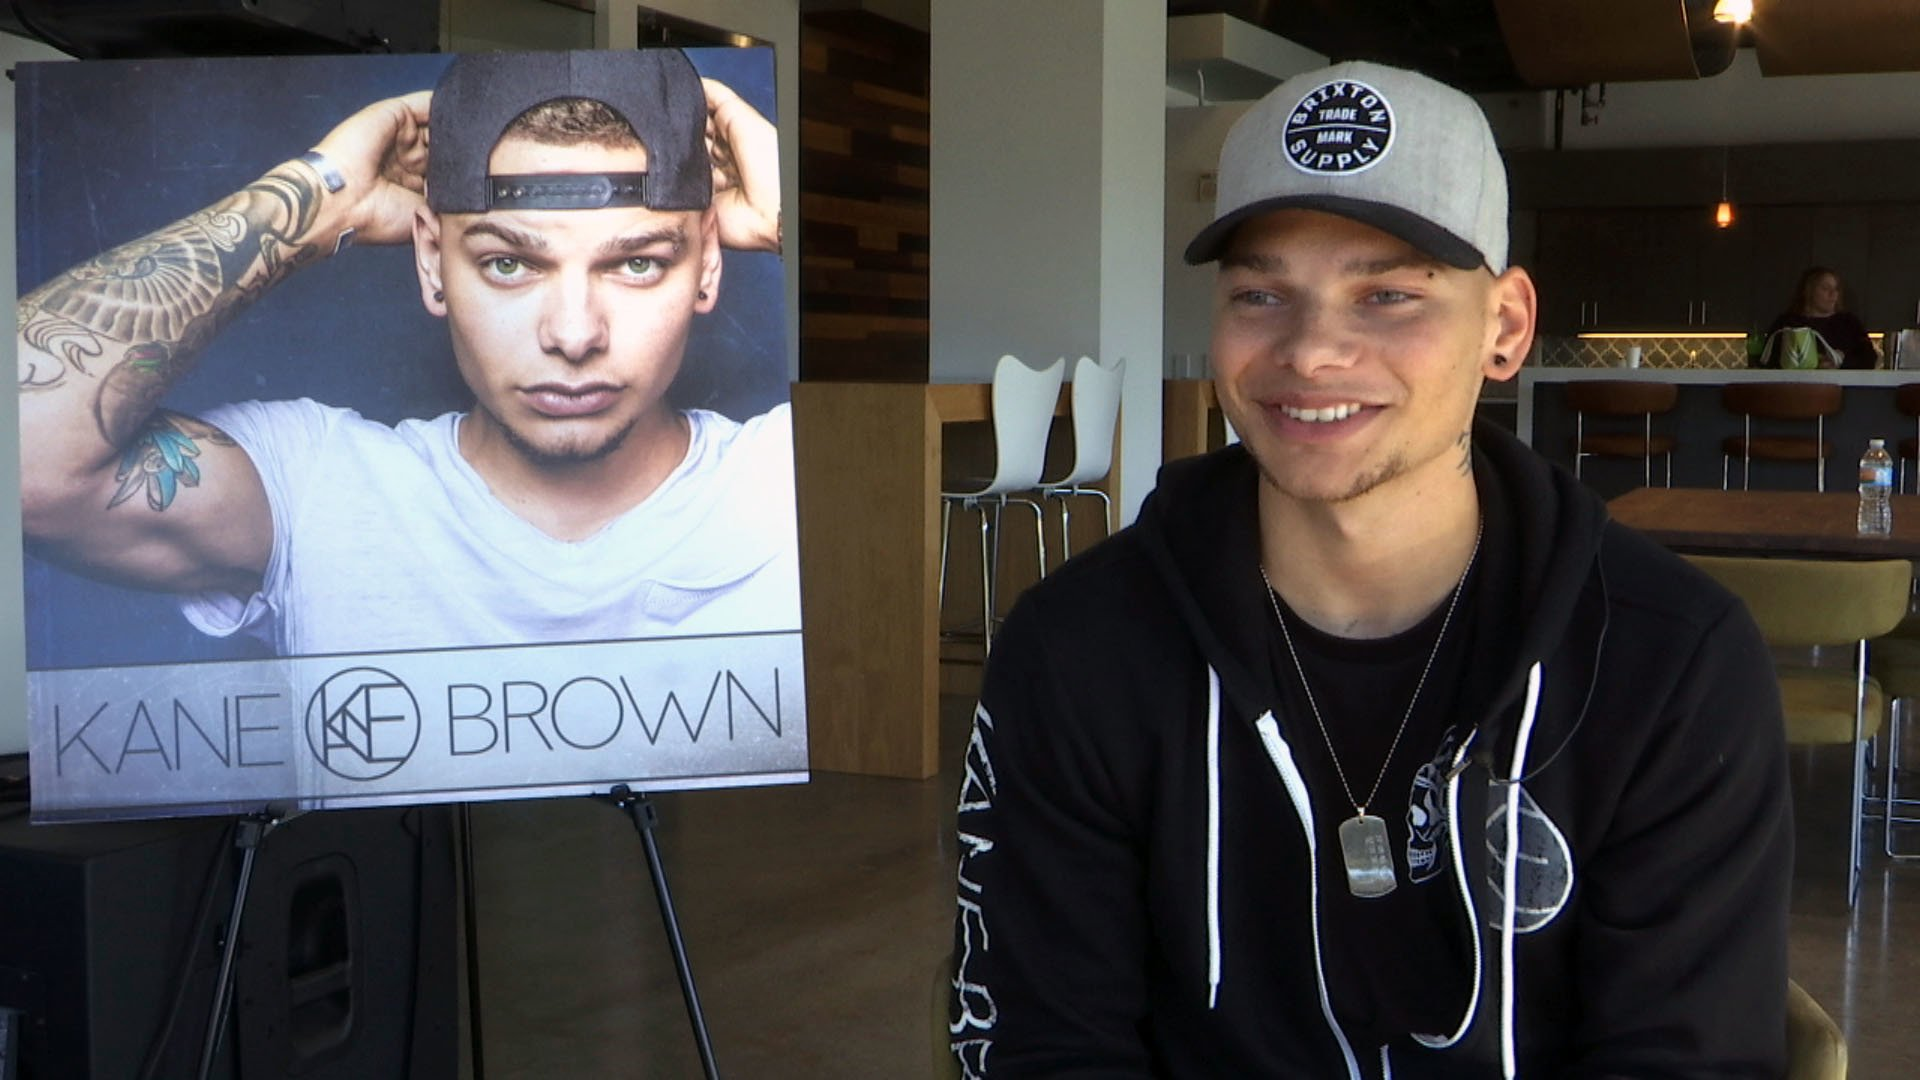 Kane Brown turned Facebook likes into a country music career